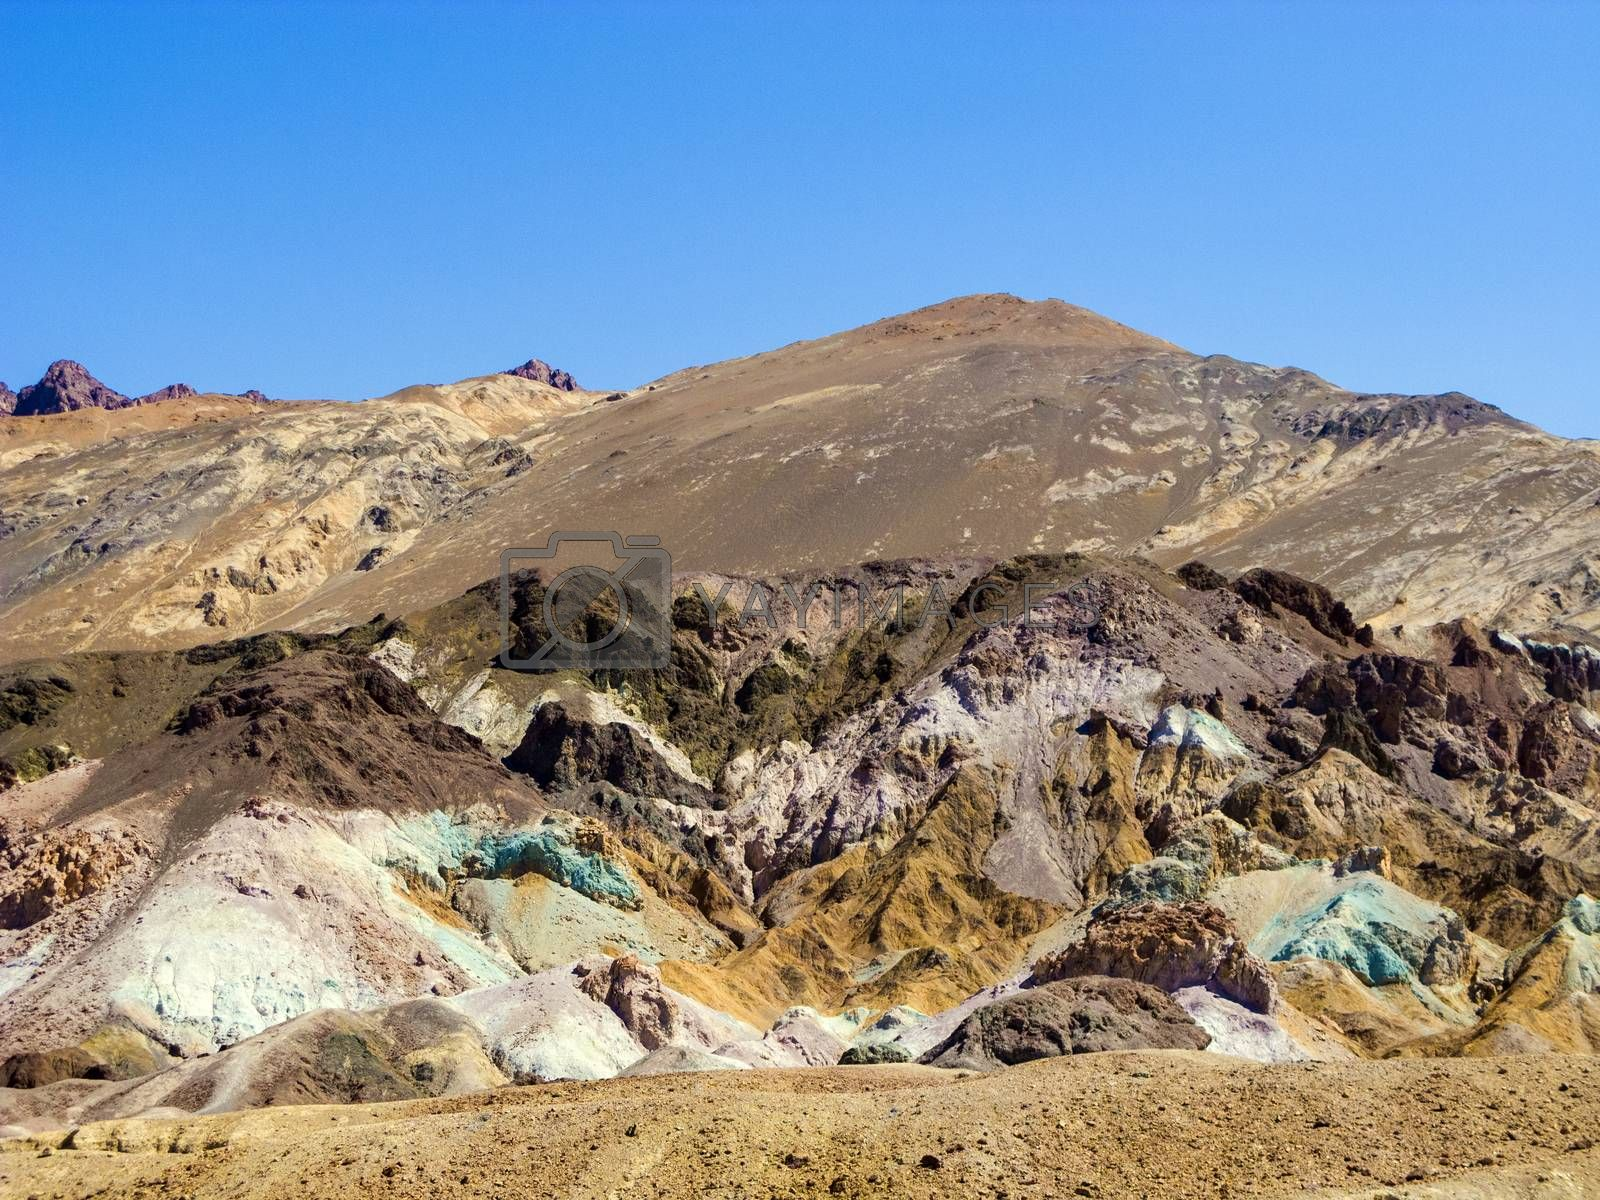 he variegated slopes of Artists Palette in Death Valley, California. Various mineral pigments have colored the volcanic deposits found here.